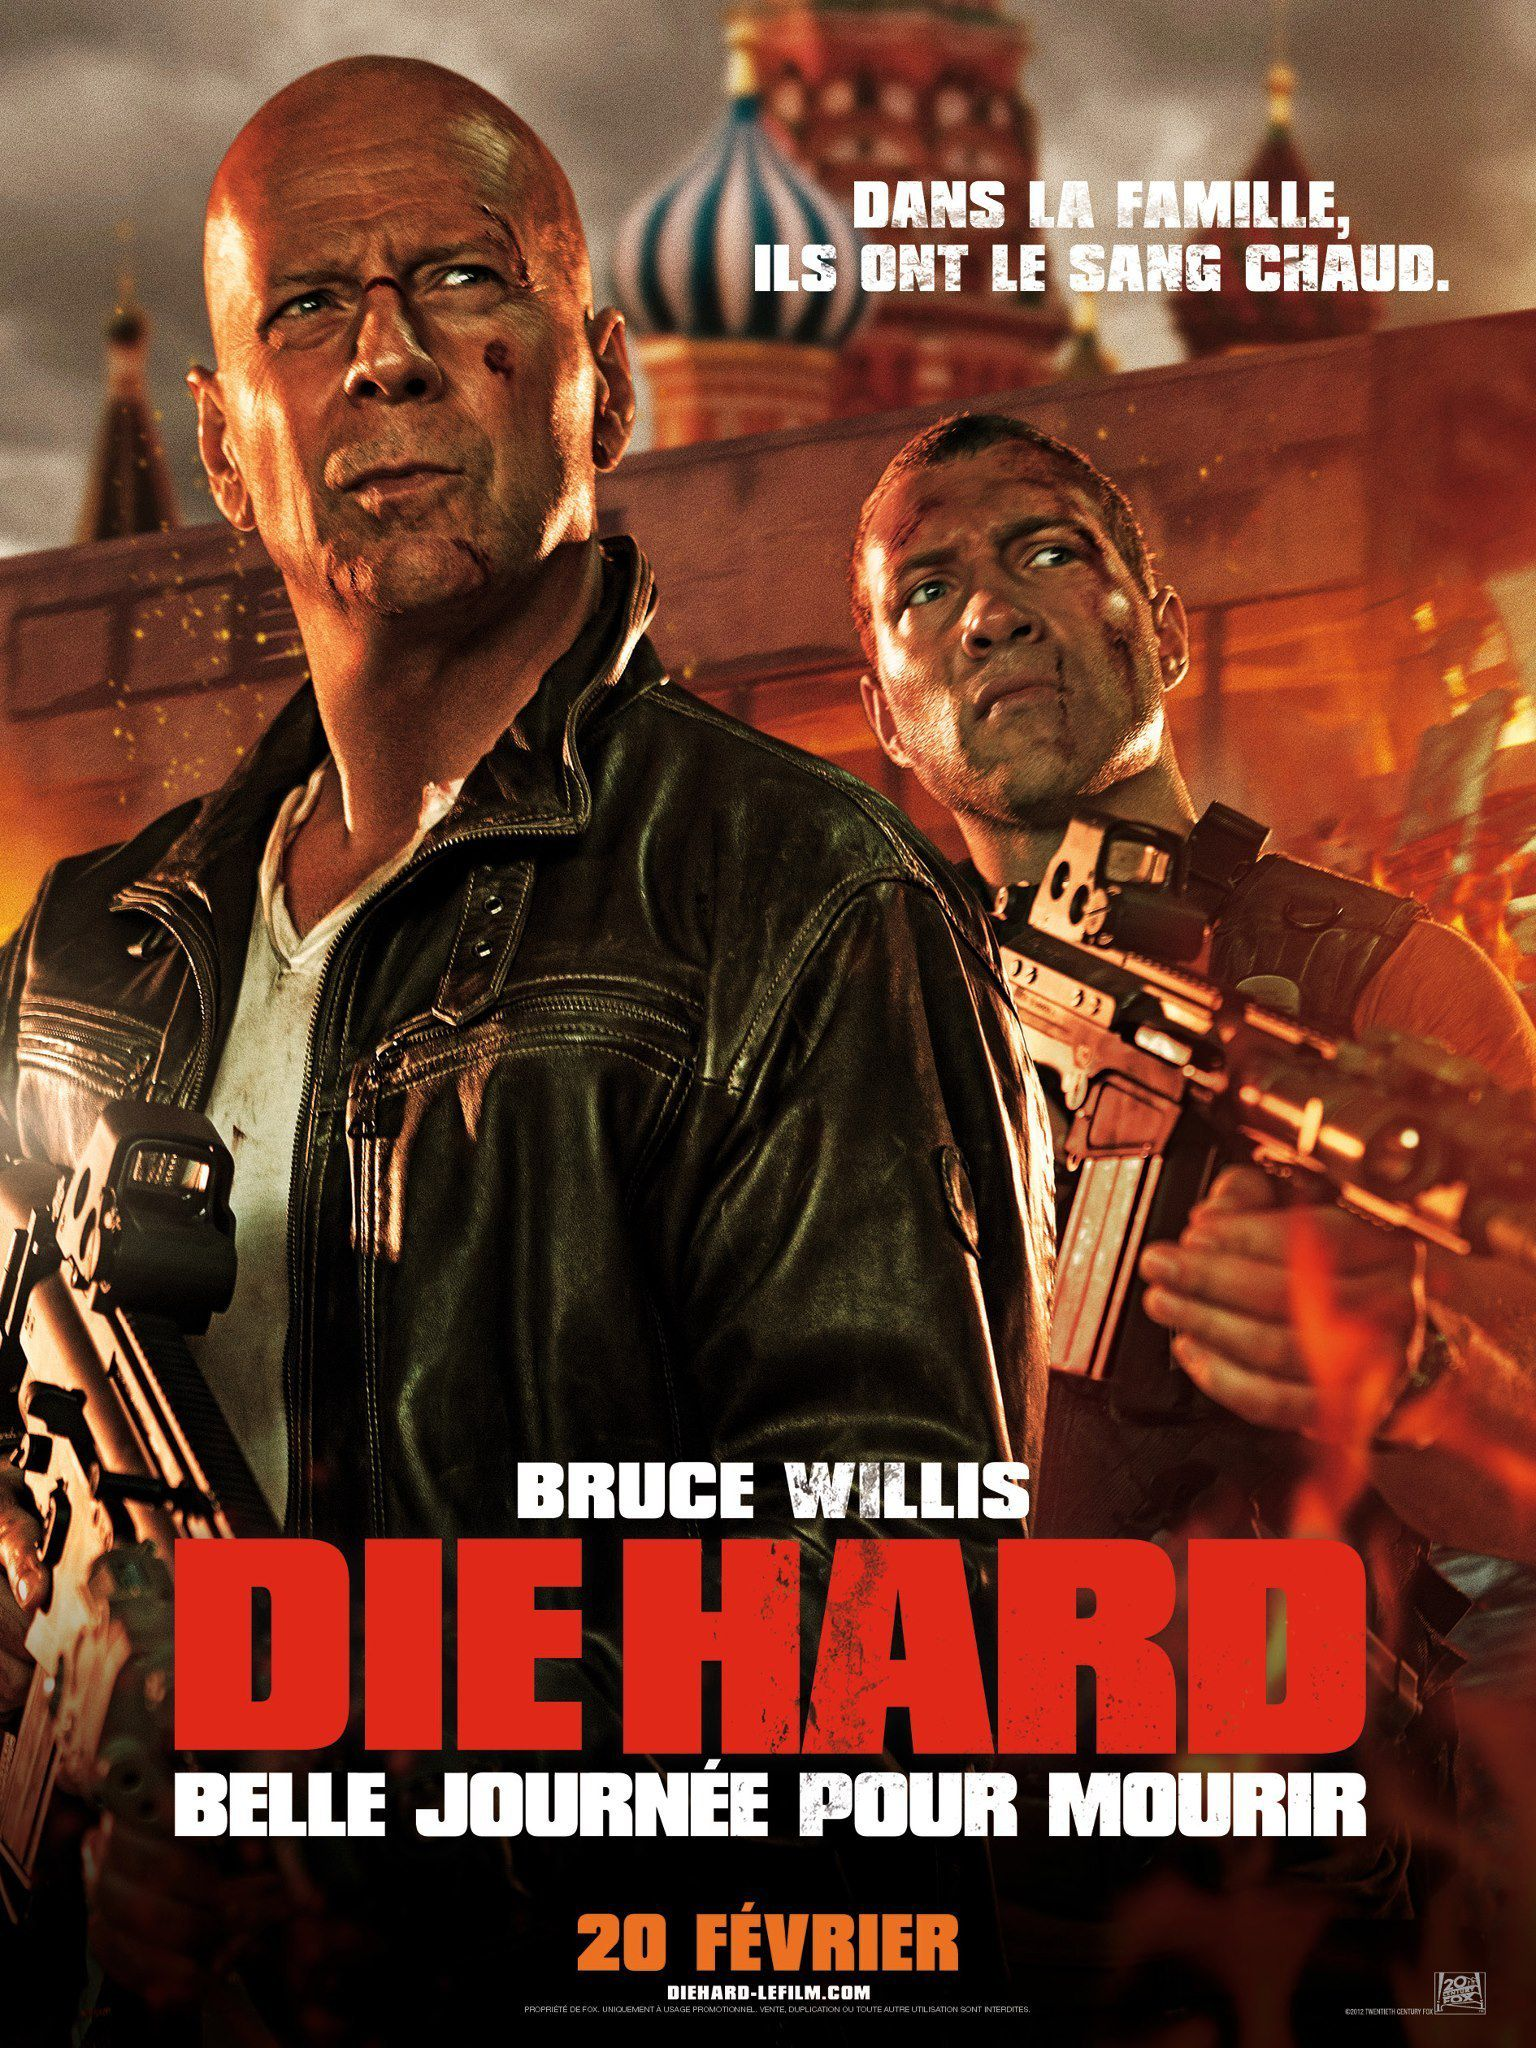 affiche poster die hard belle journée mourir good day disney fox